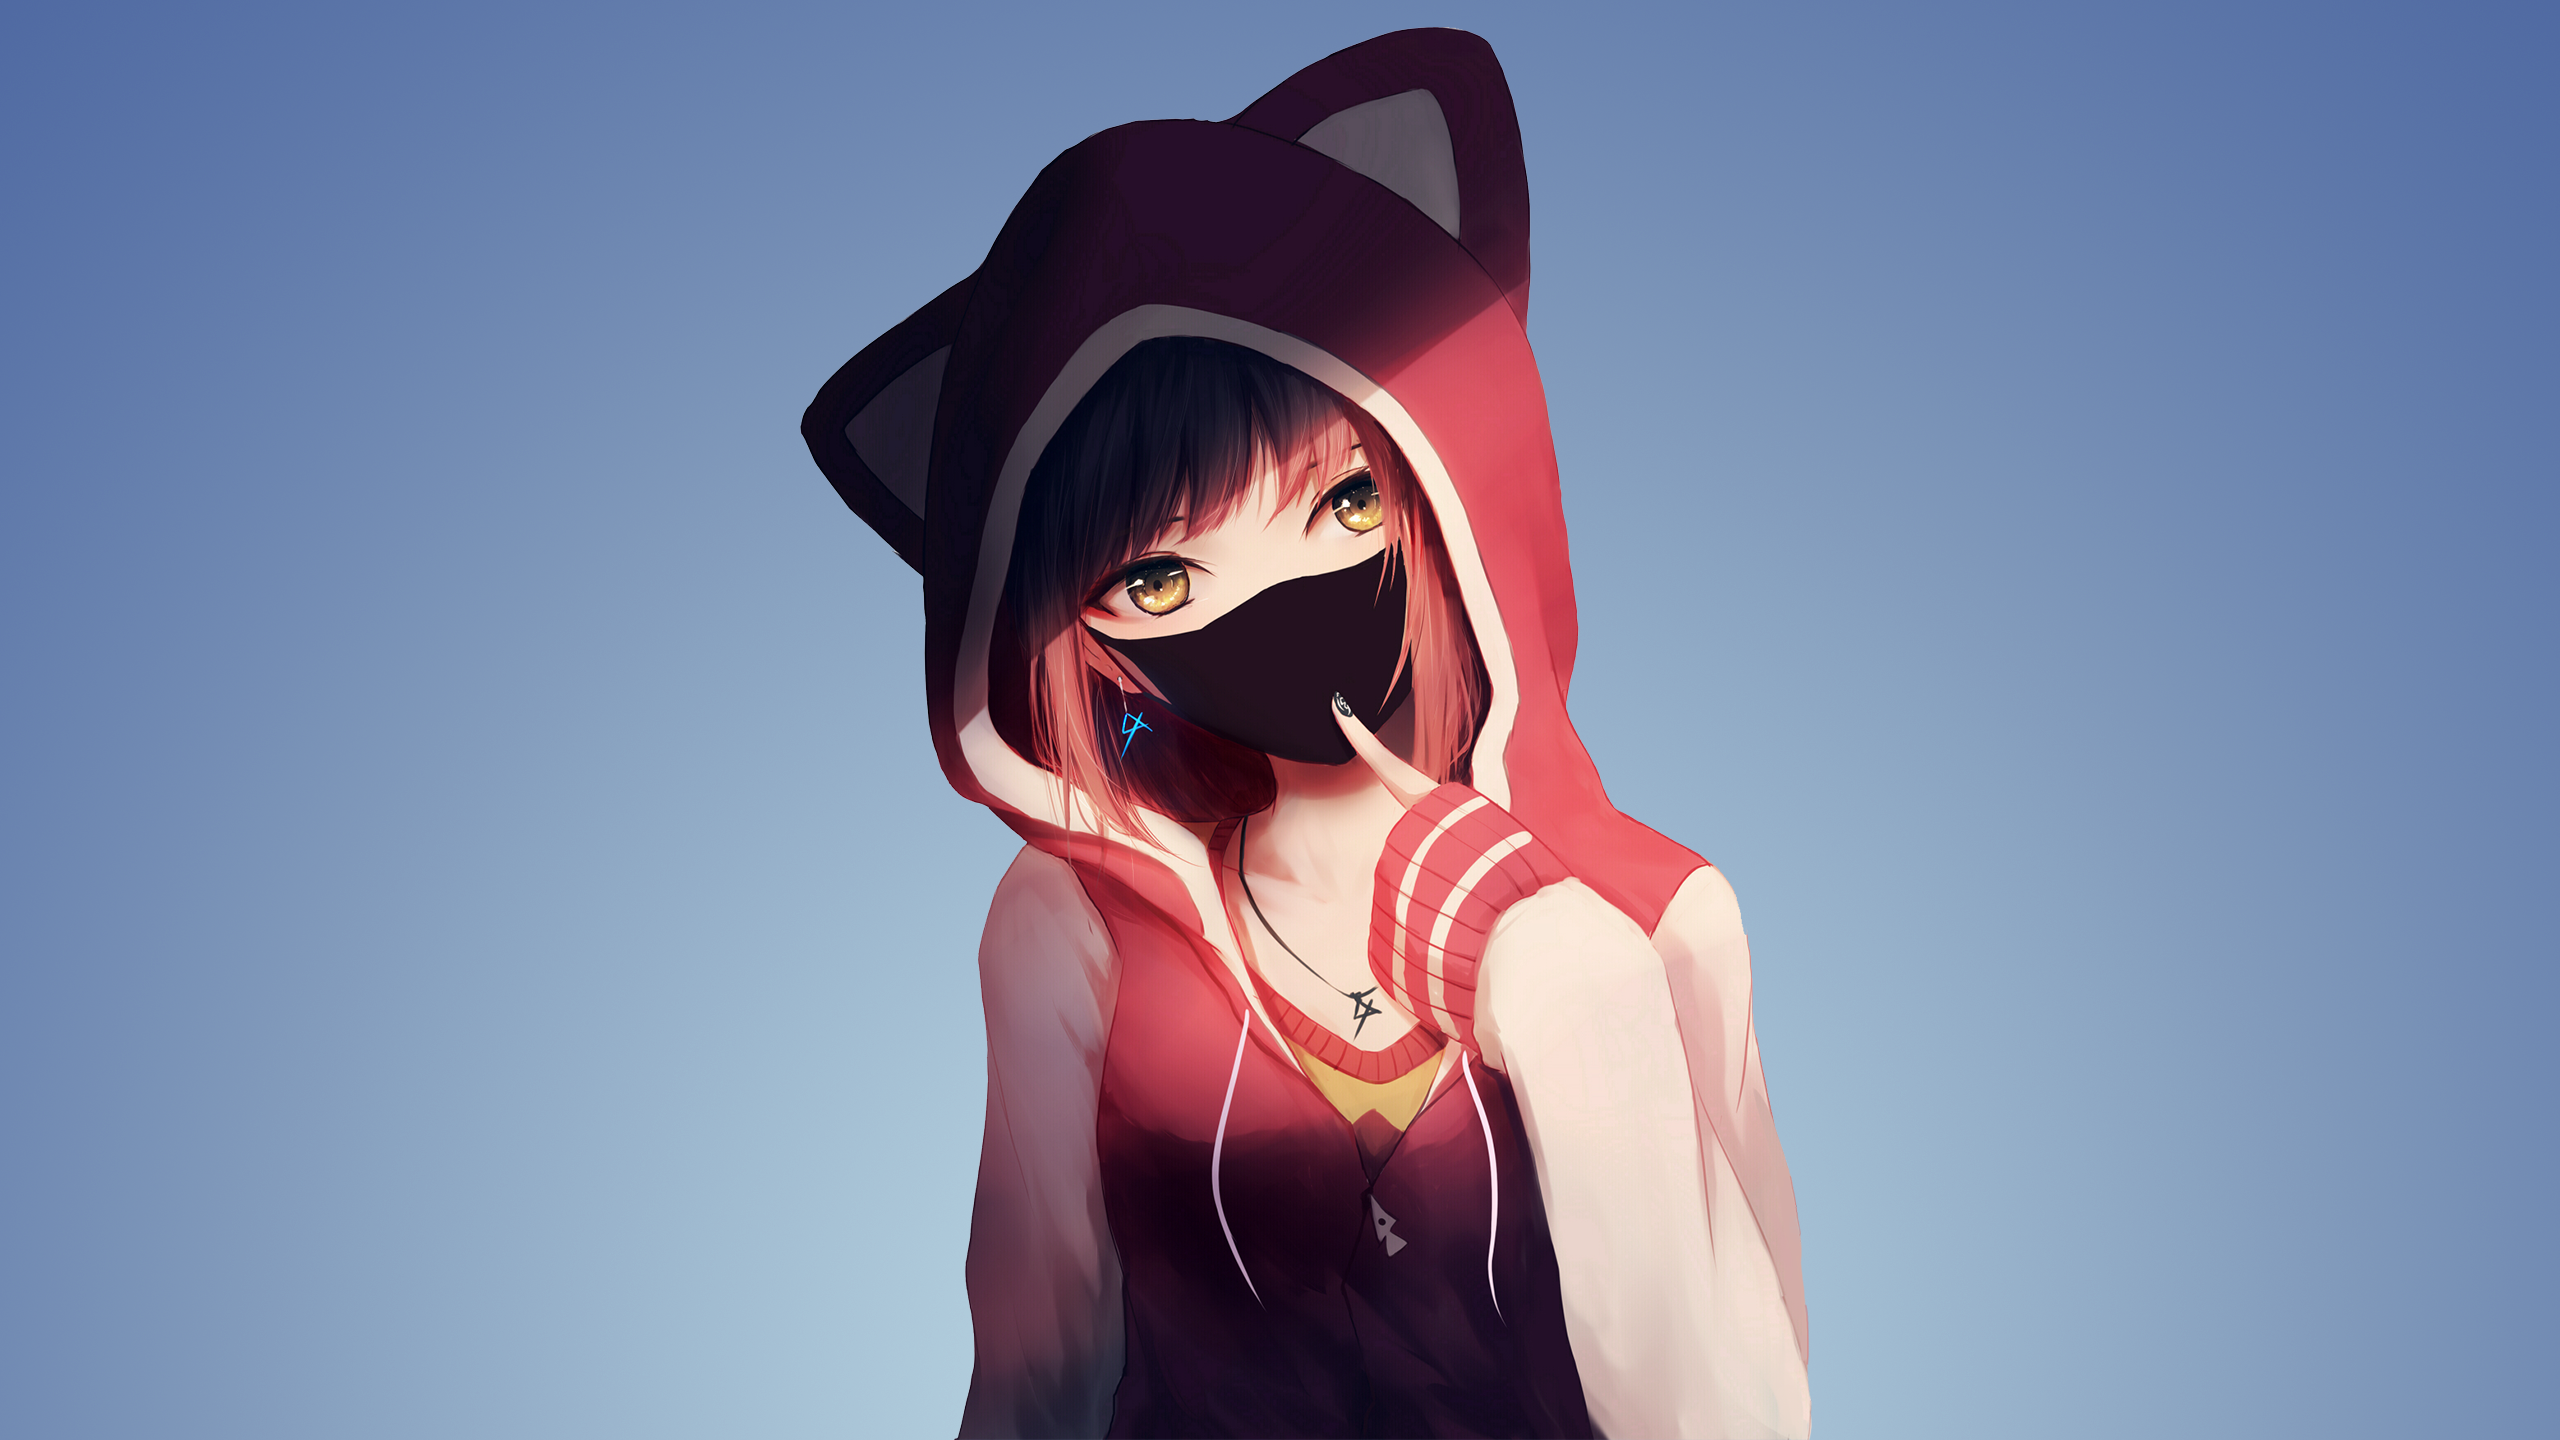 Original Resolution Popular - Anime Girl With Hoodie , HD Wallpaper & Backgrounds